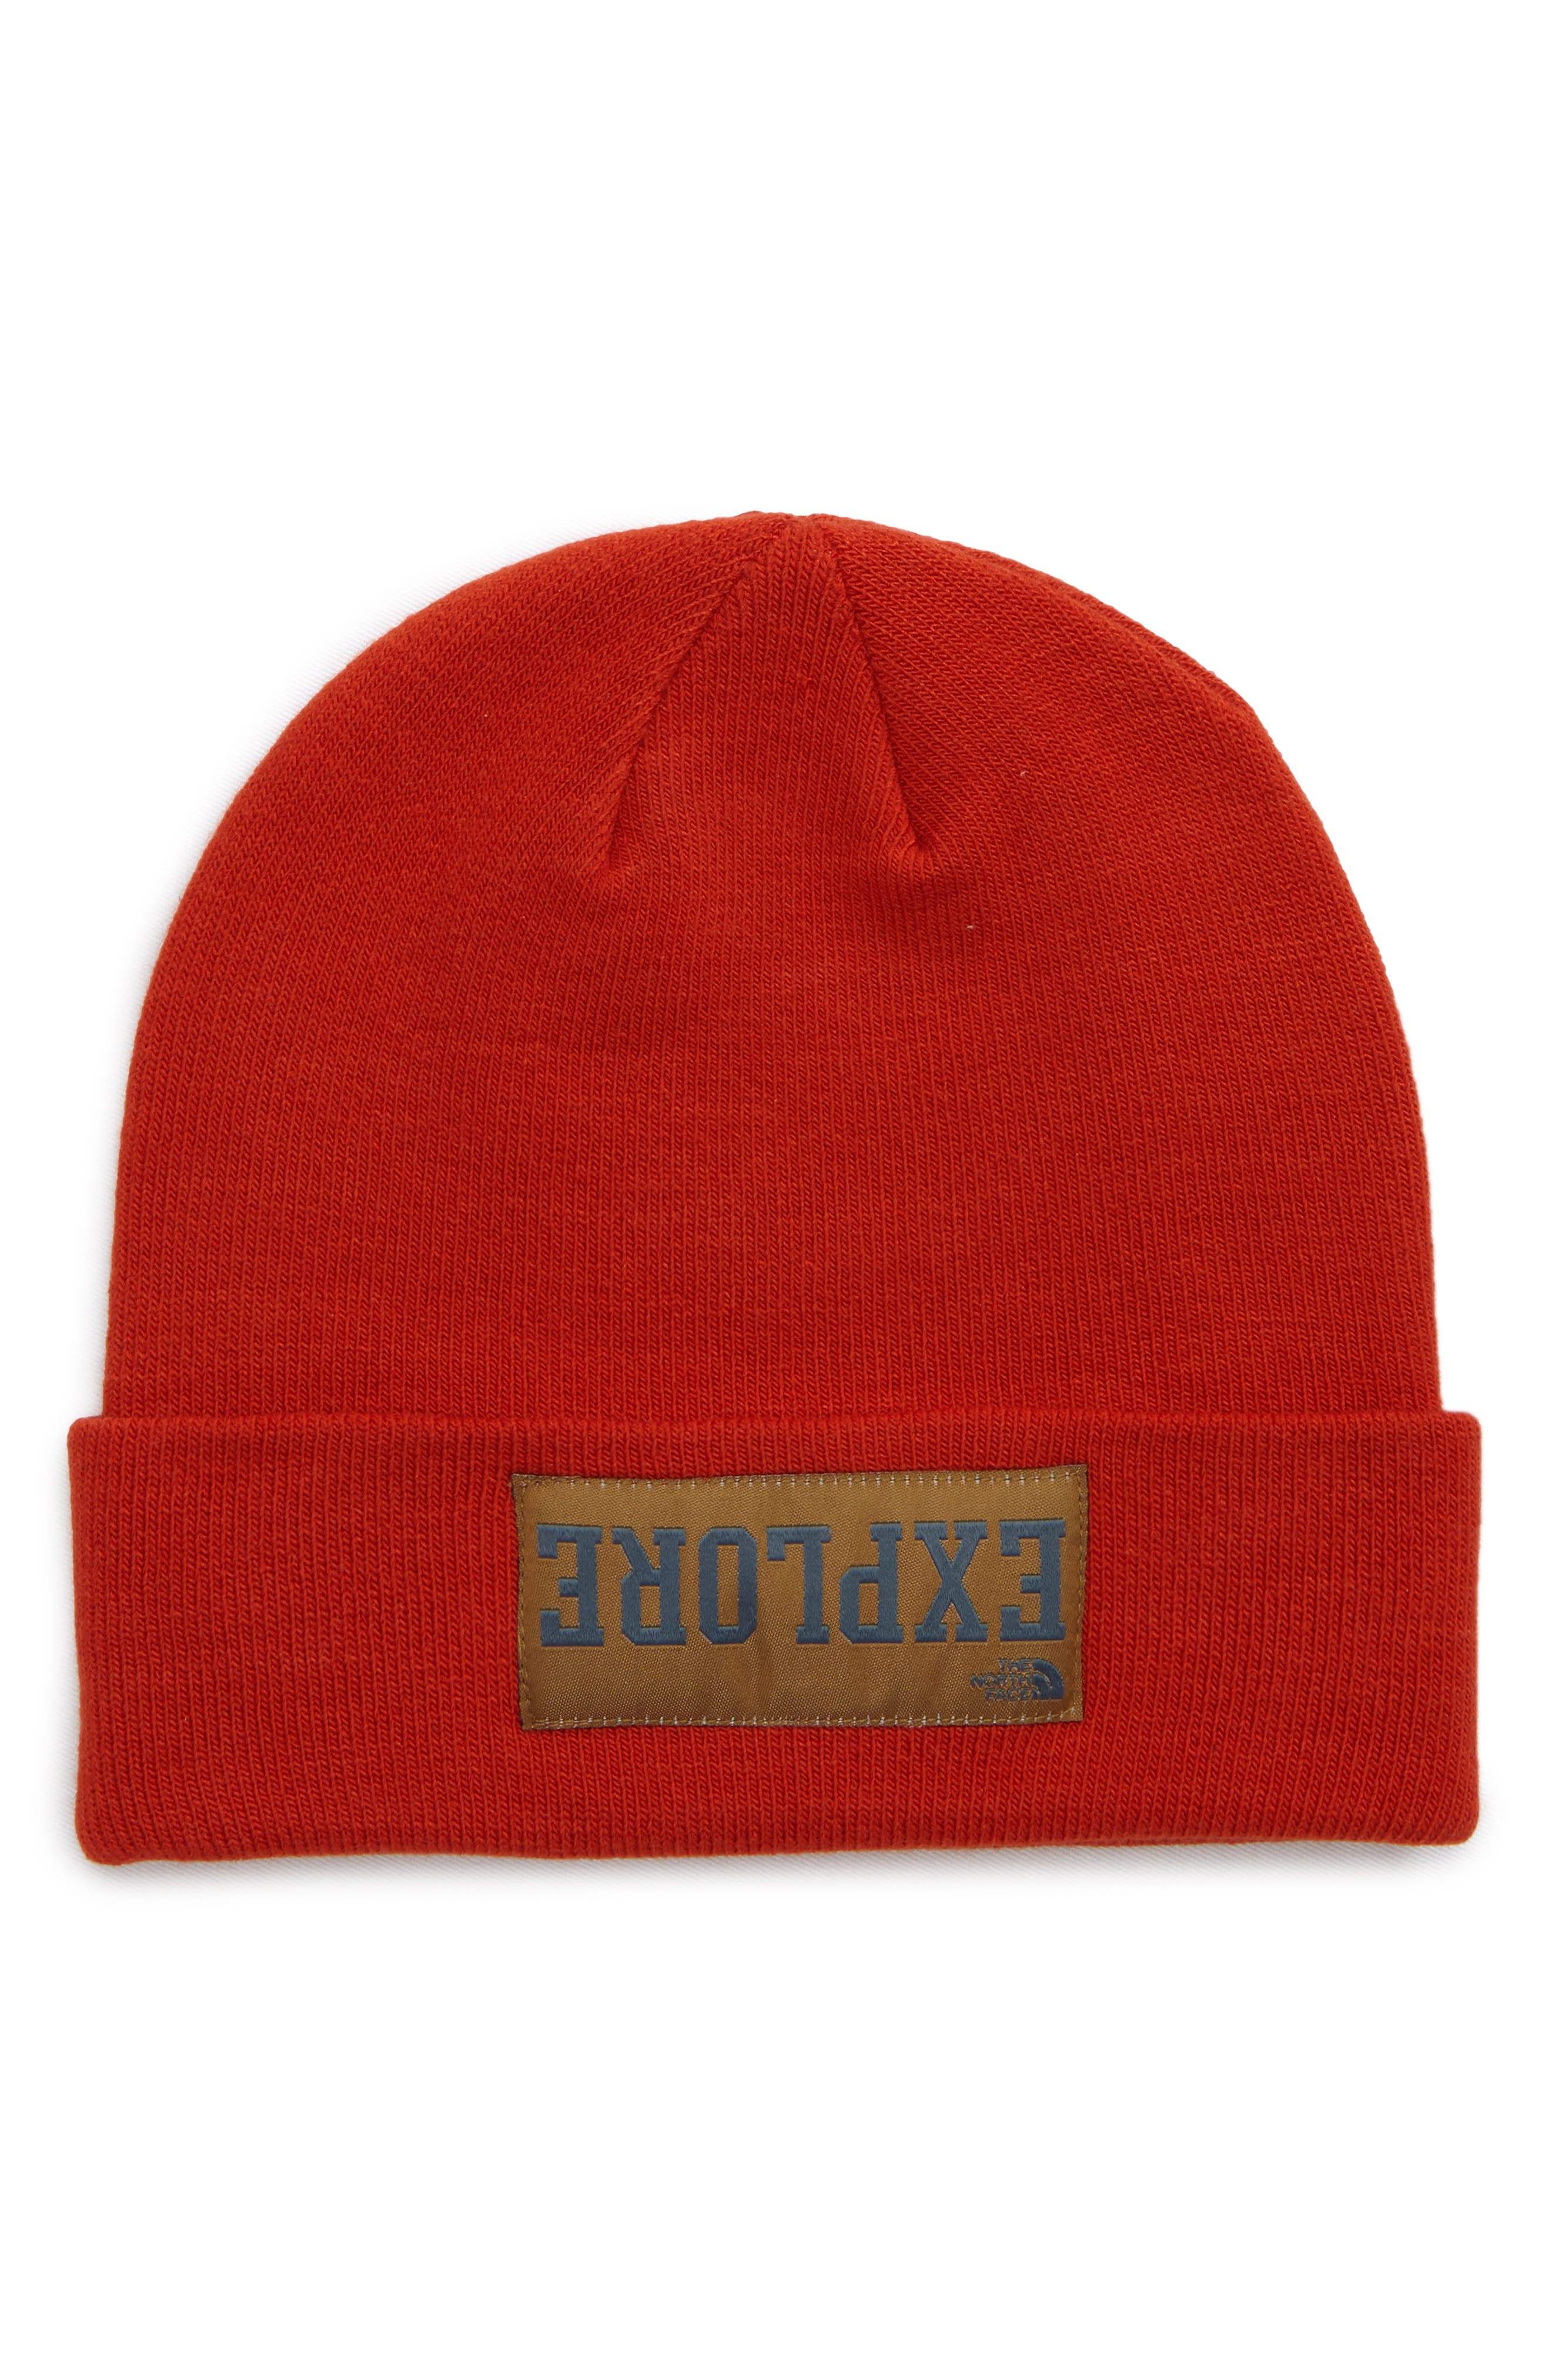 Dock Worker Beanie,                         Main,                         color, 801